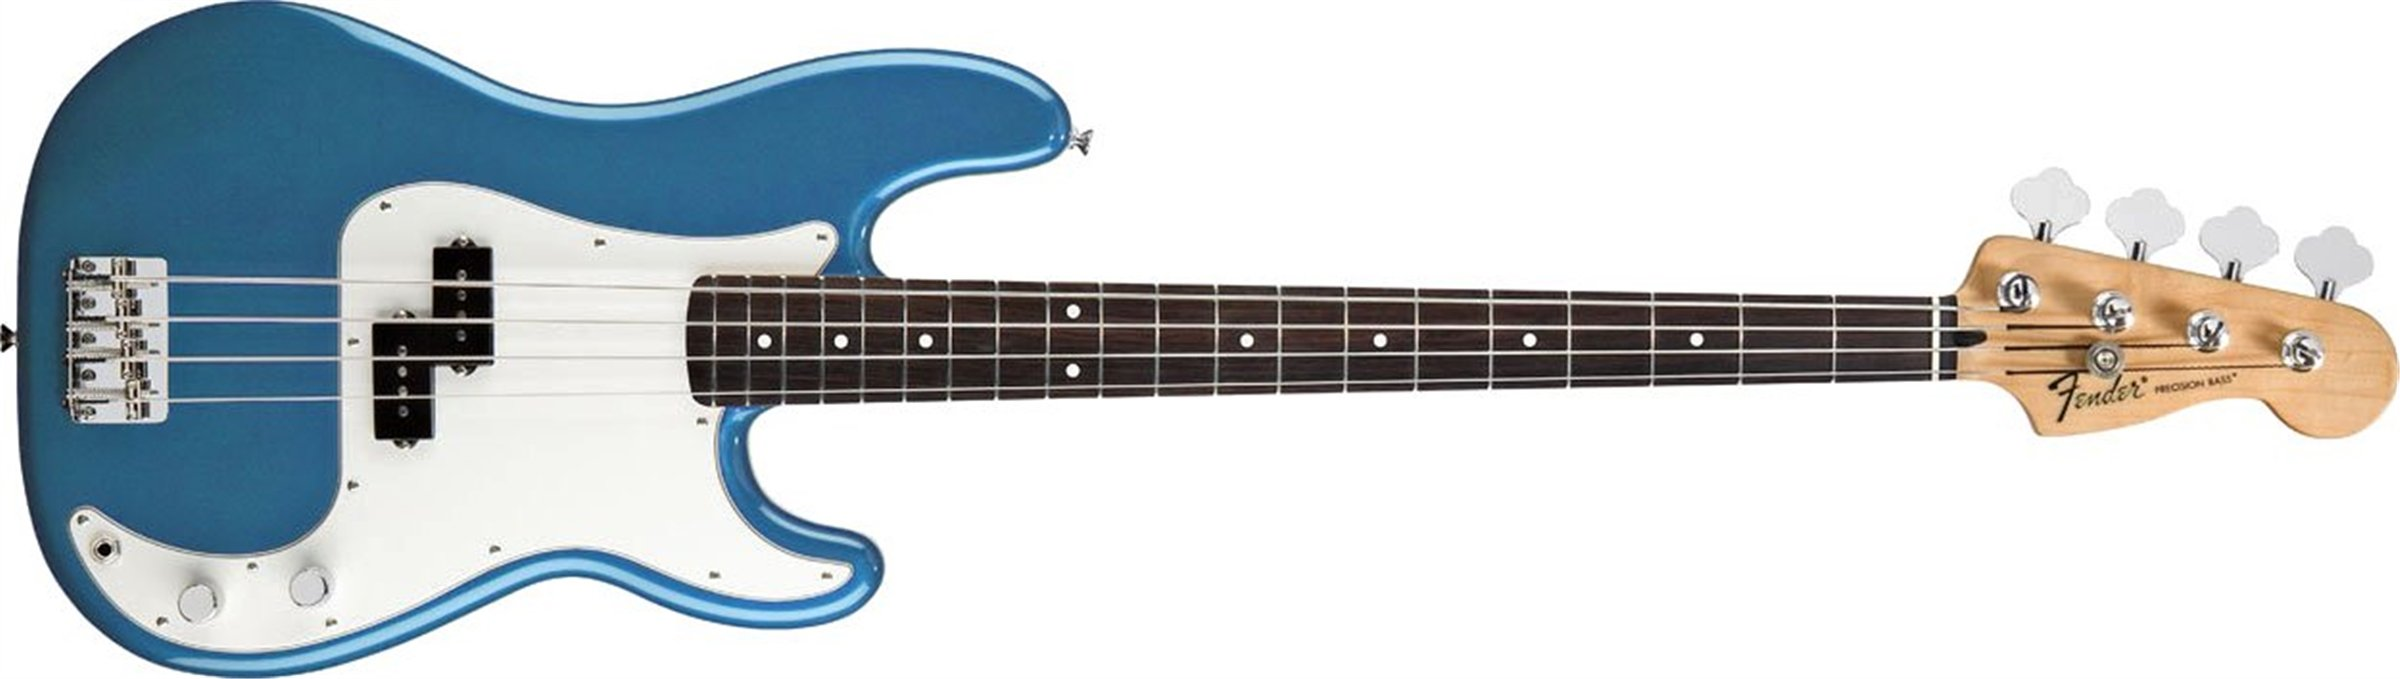 Fender Standard Precision Electric Bass Guitar - Rosewood Fingerboard, Lake Placid Blue